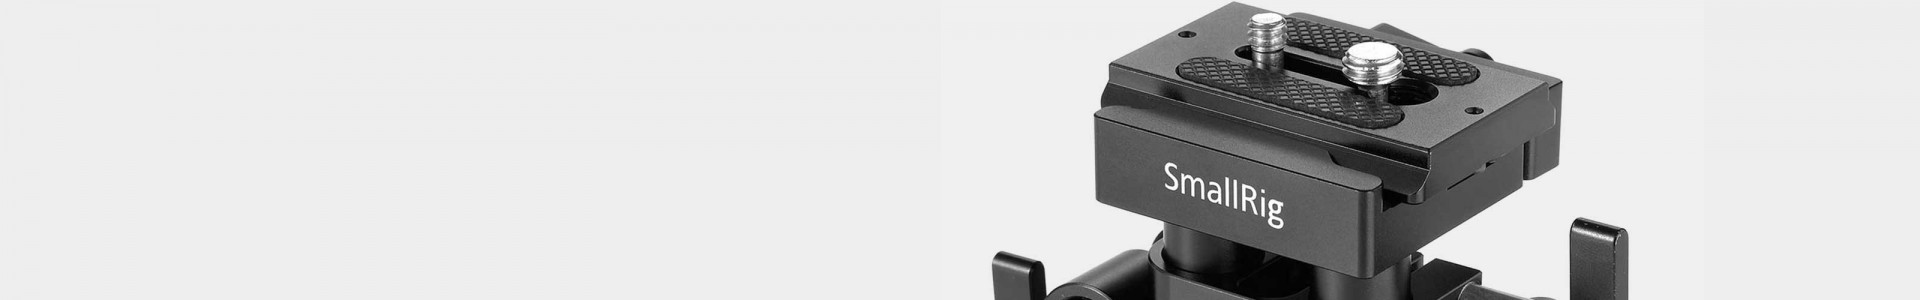 SmallRig accessories for professional film and video cameras - Avacab